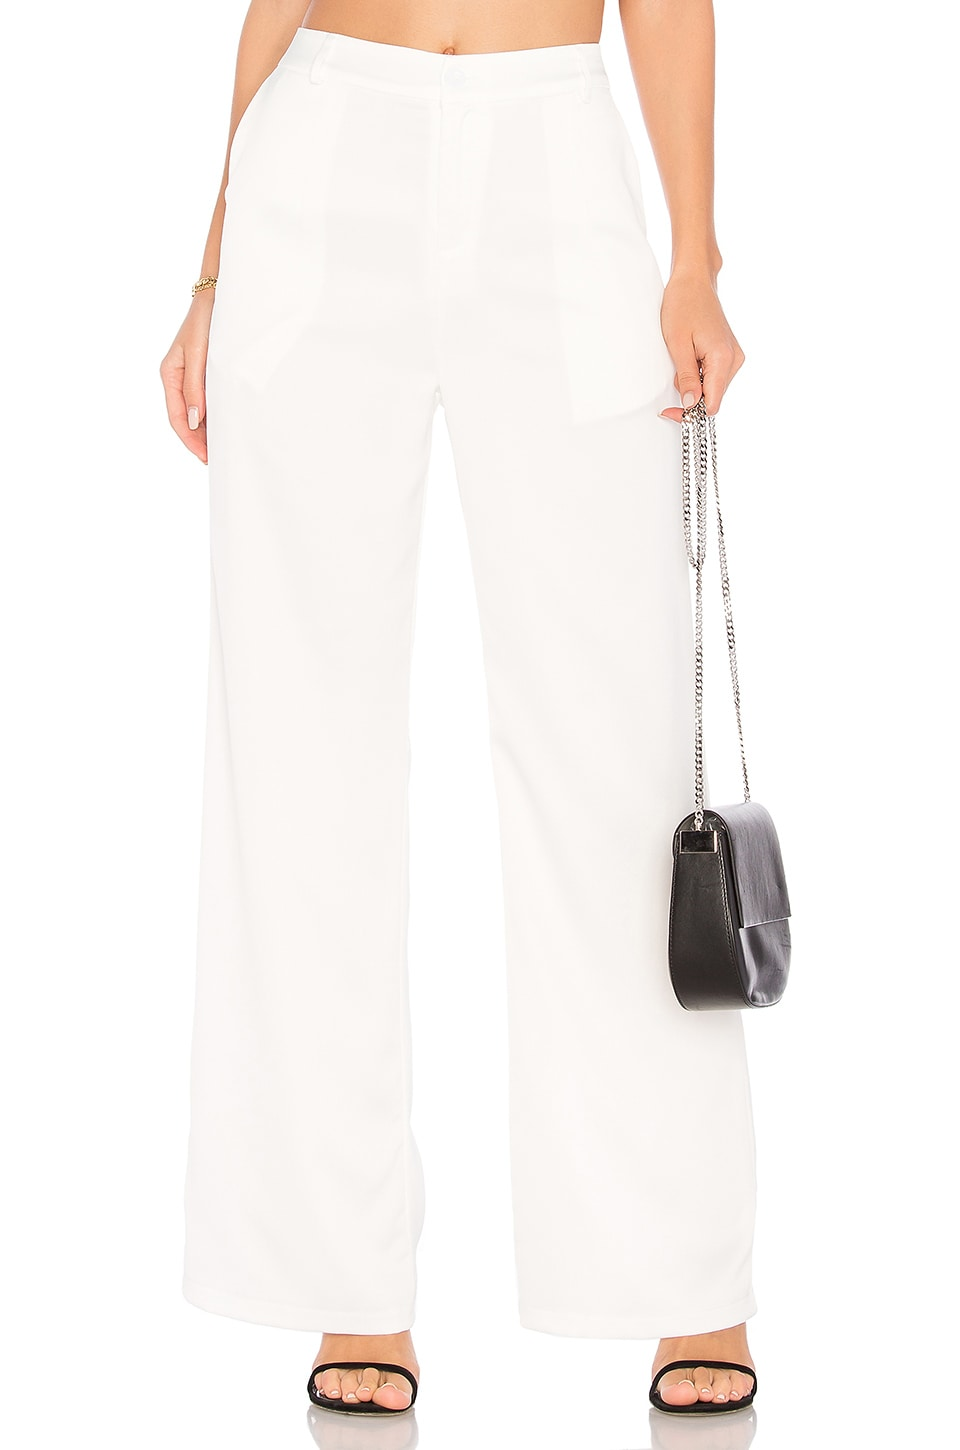 Silver Lining Trousers